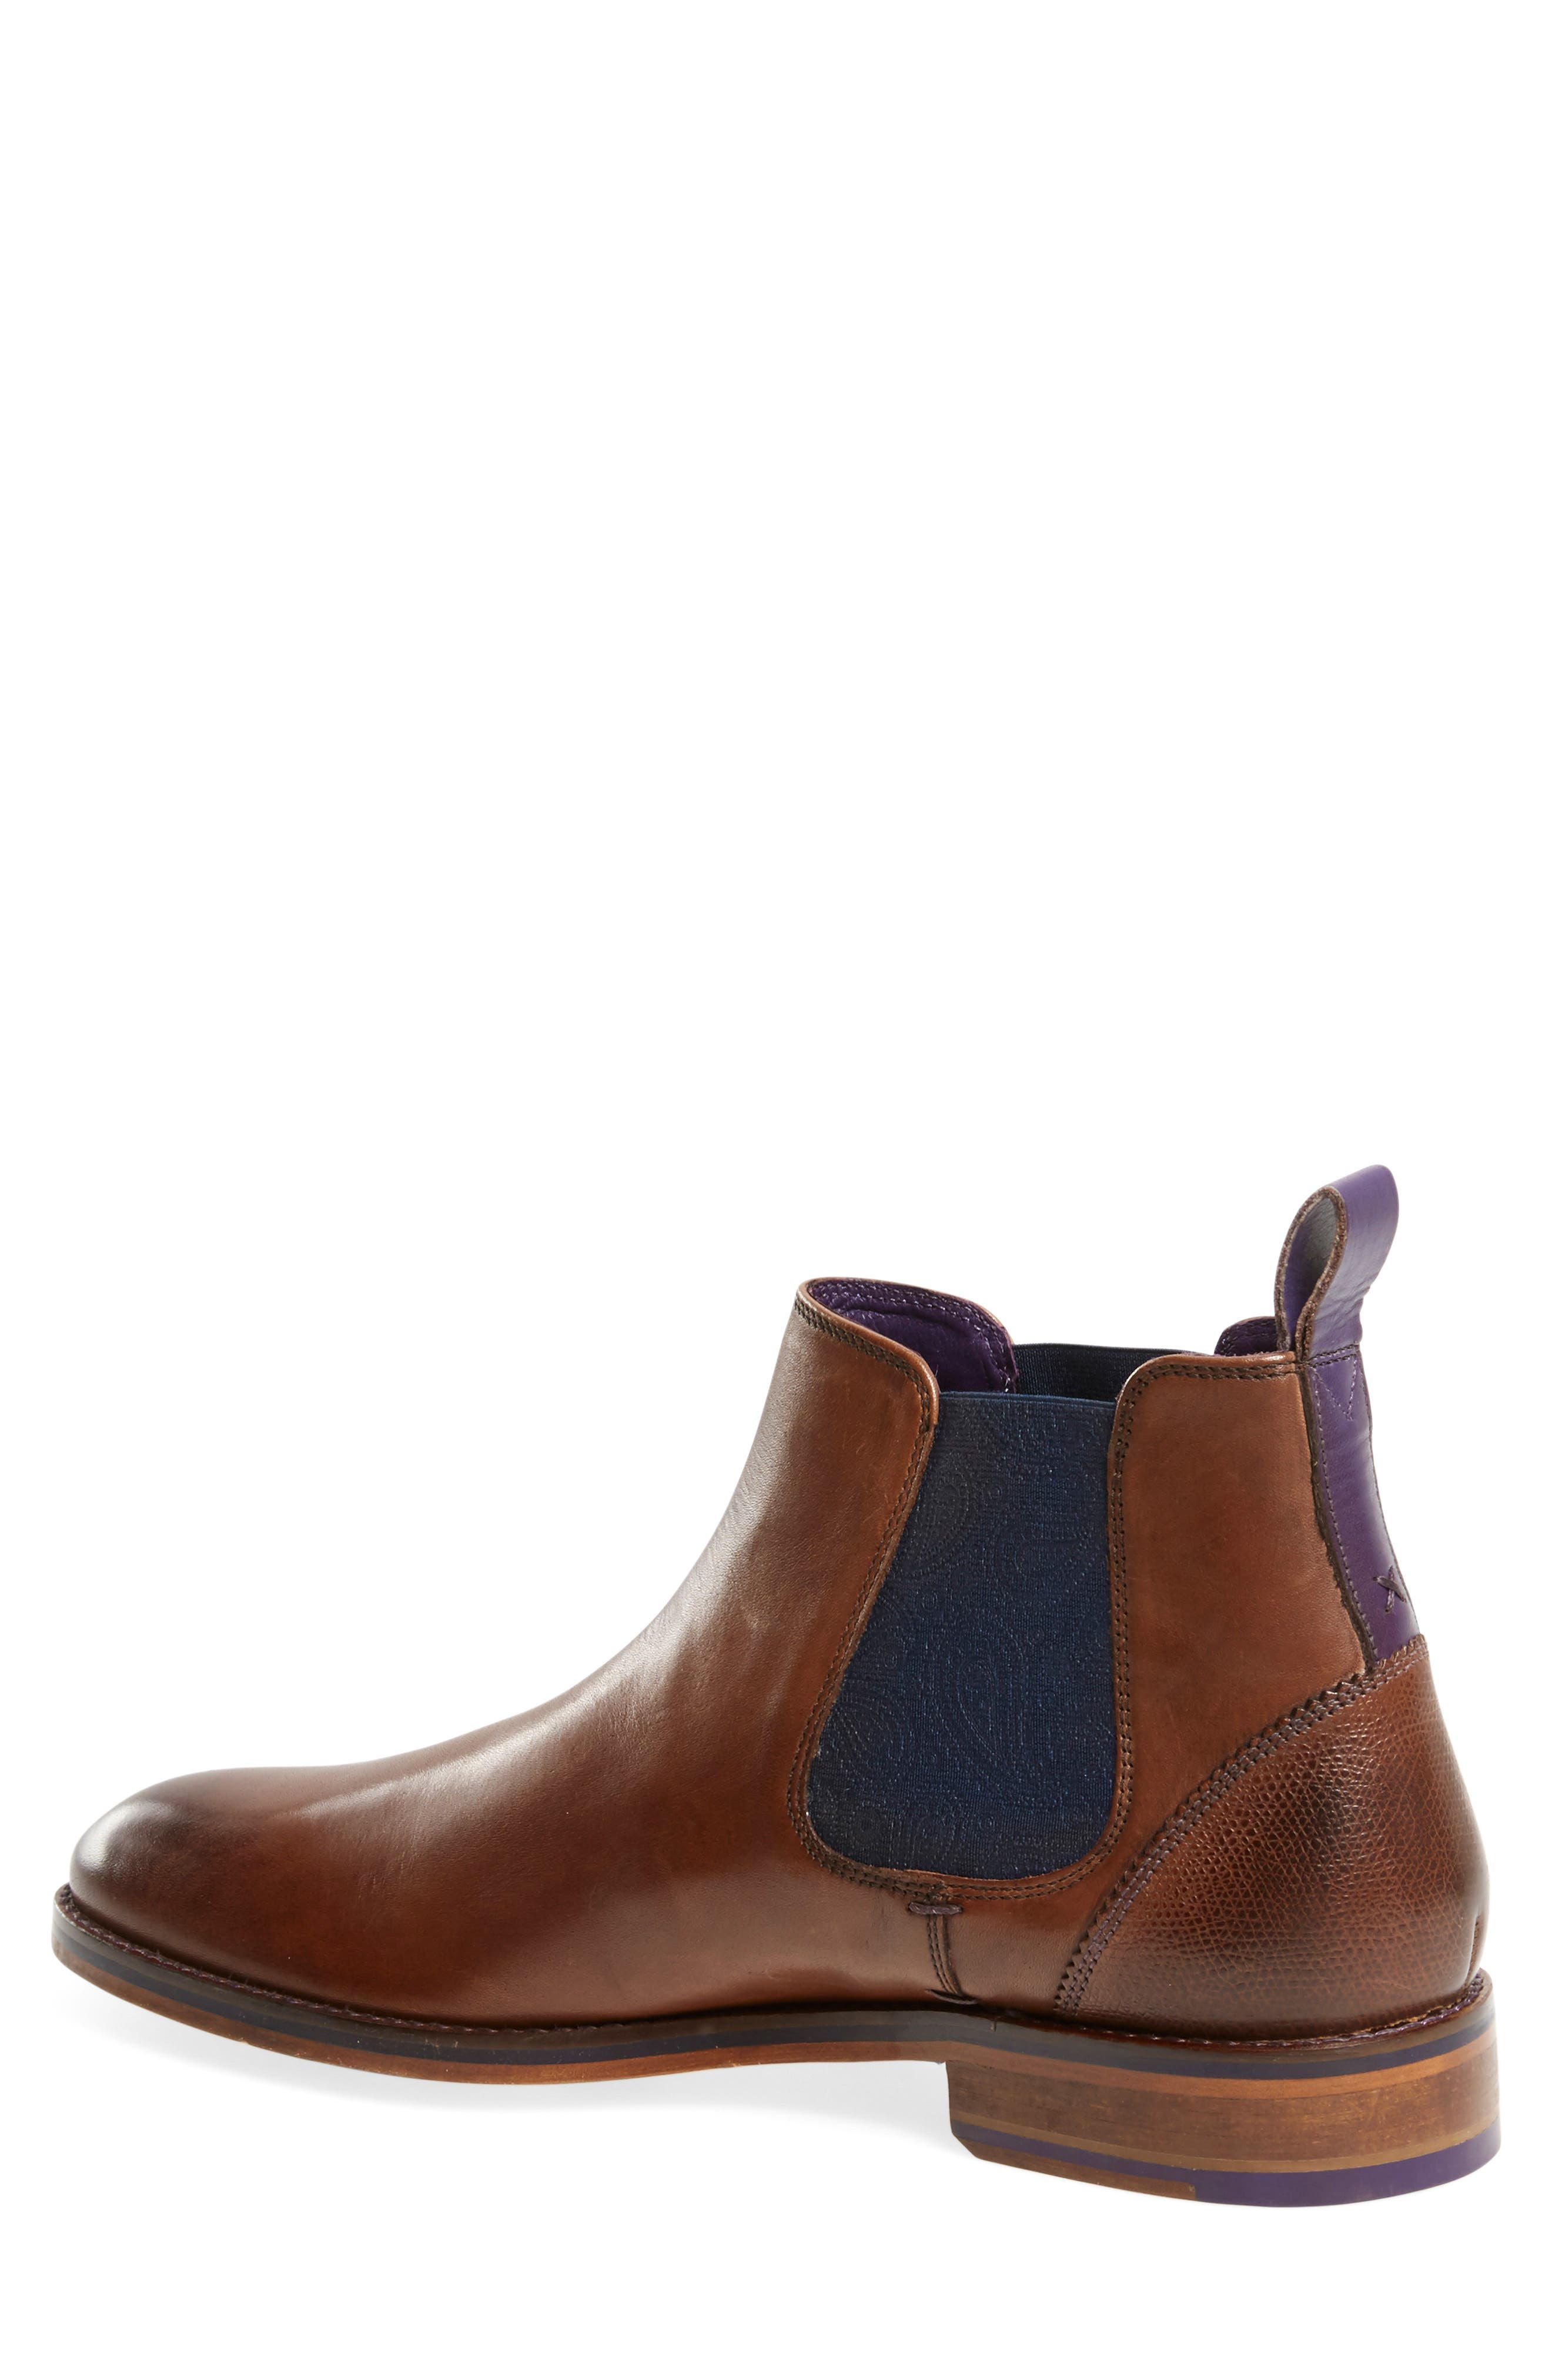 TED BAKER LONDON, 'Camroon 4' Chelsea Boot, Alternate thumbnail 3, color, 219